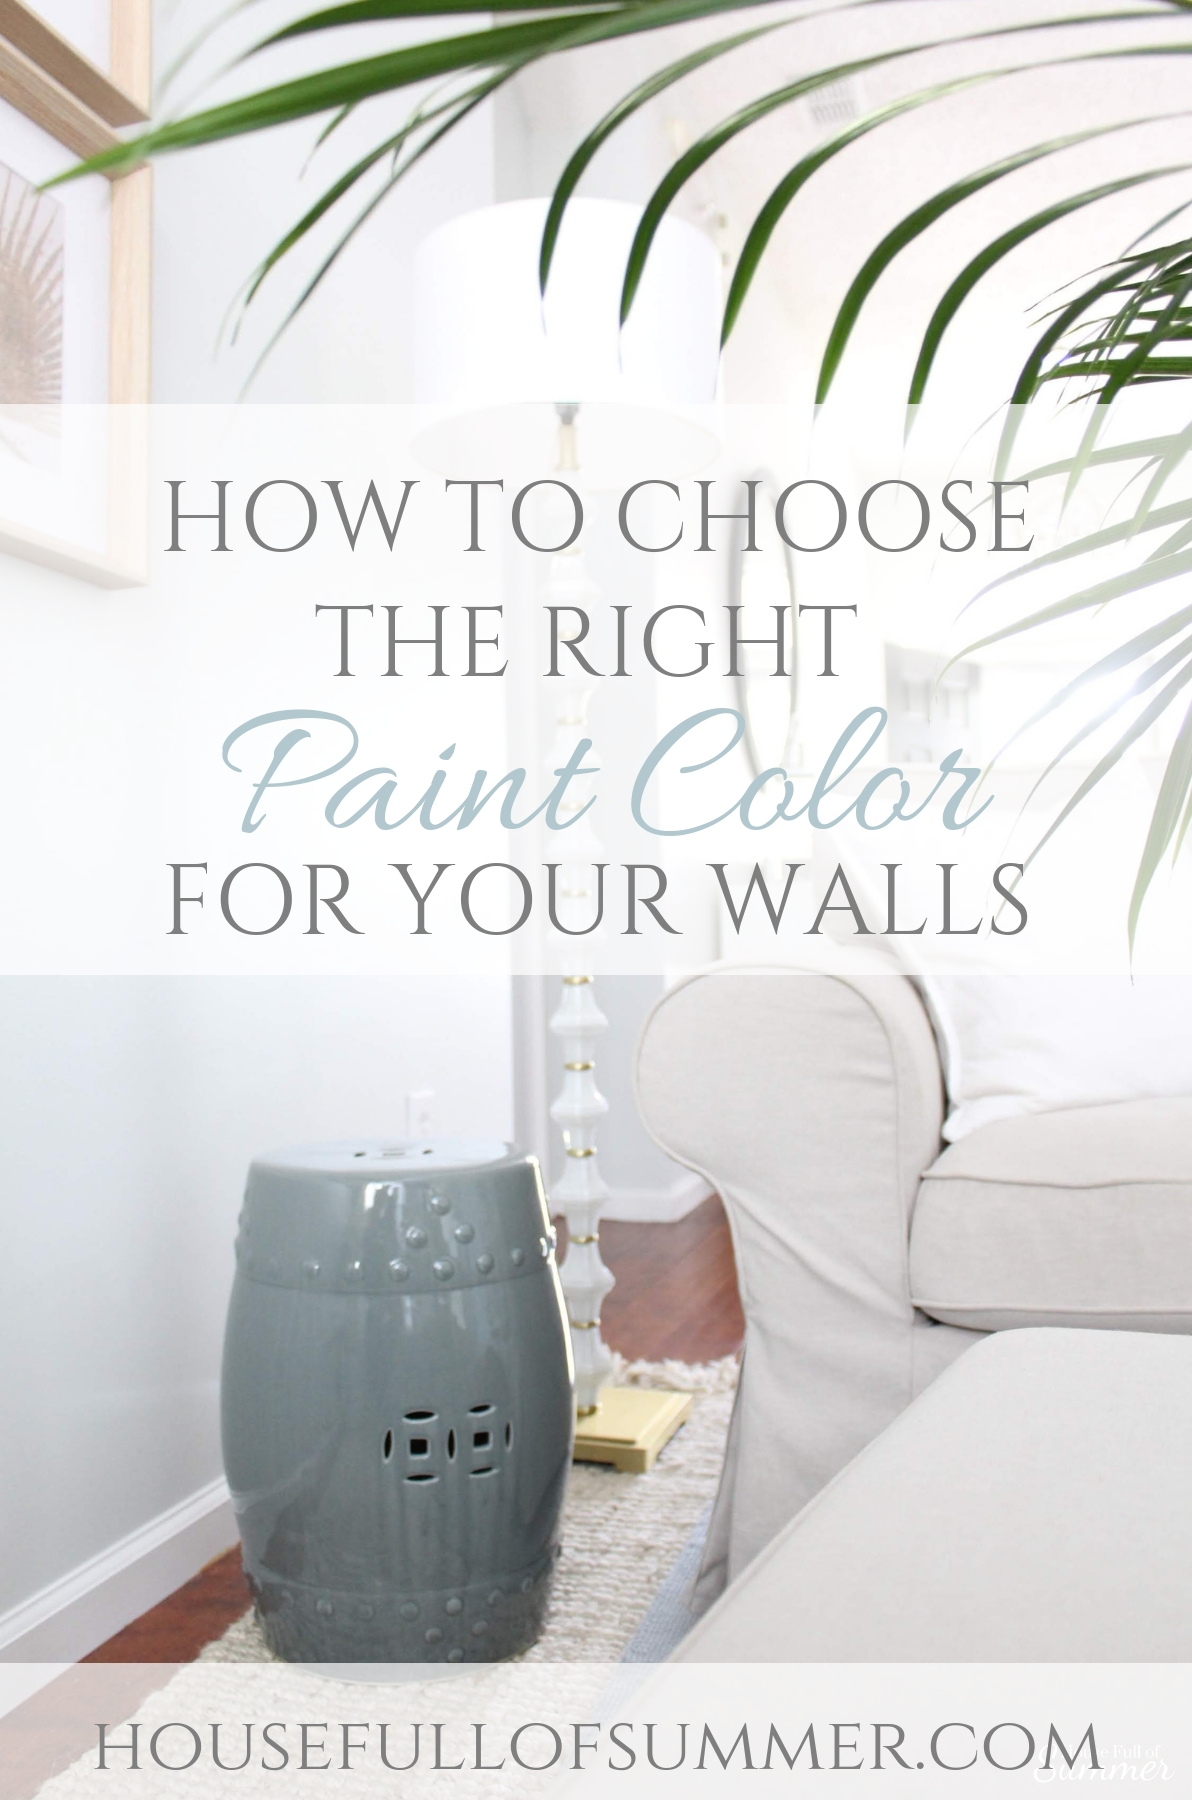 How I Chose My Calming Coastal Gray Wall Color | Tips for Choosing Interior Paint Colors #housefullofsummer #coastaldecor  @housefullofsummer #paintcolor #graypaint #greypaint #coastalpaintcolors #coastalhome #beachhouse